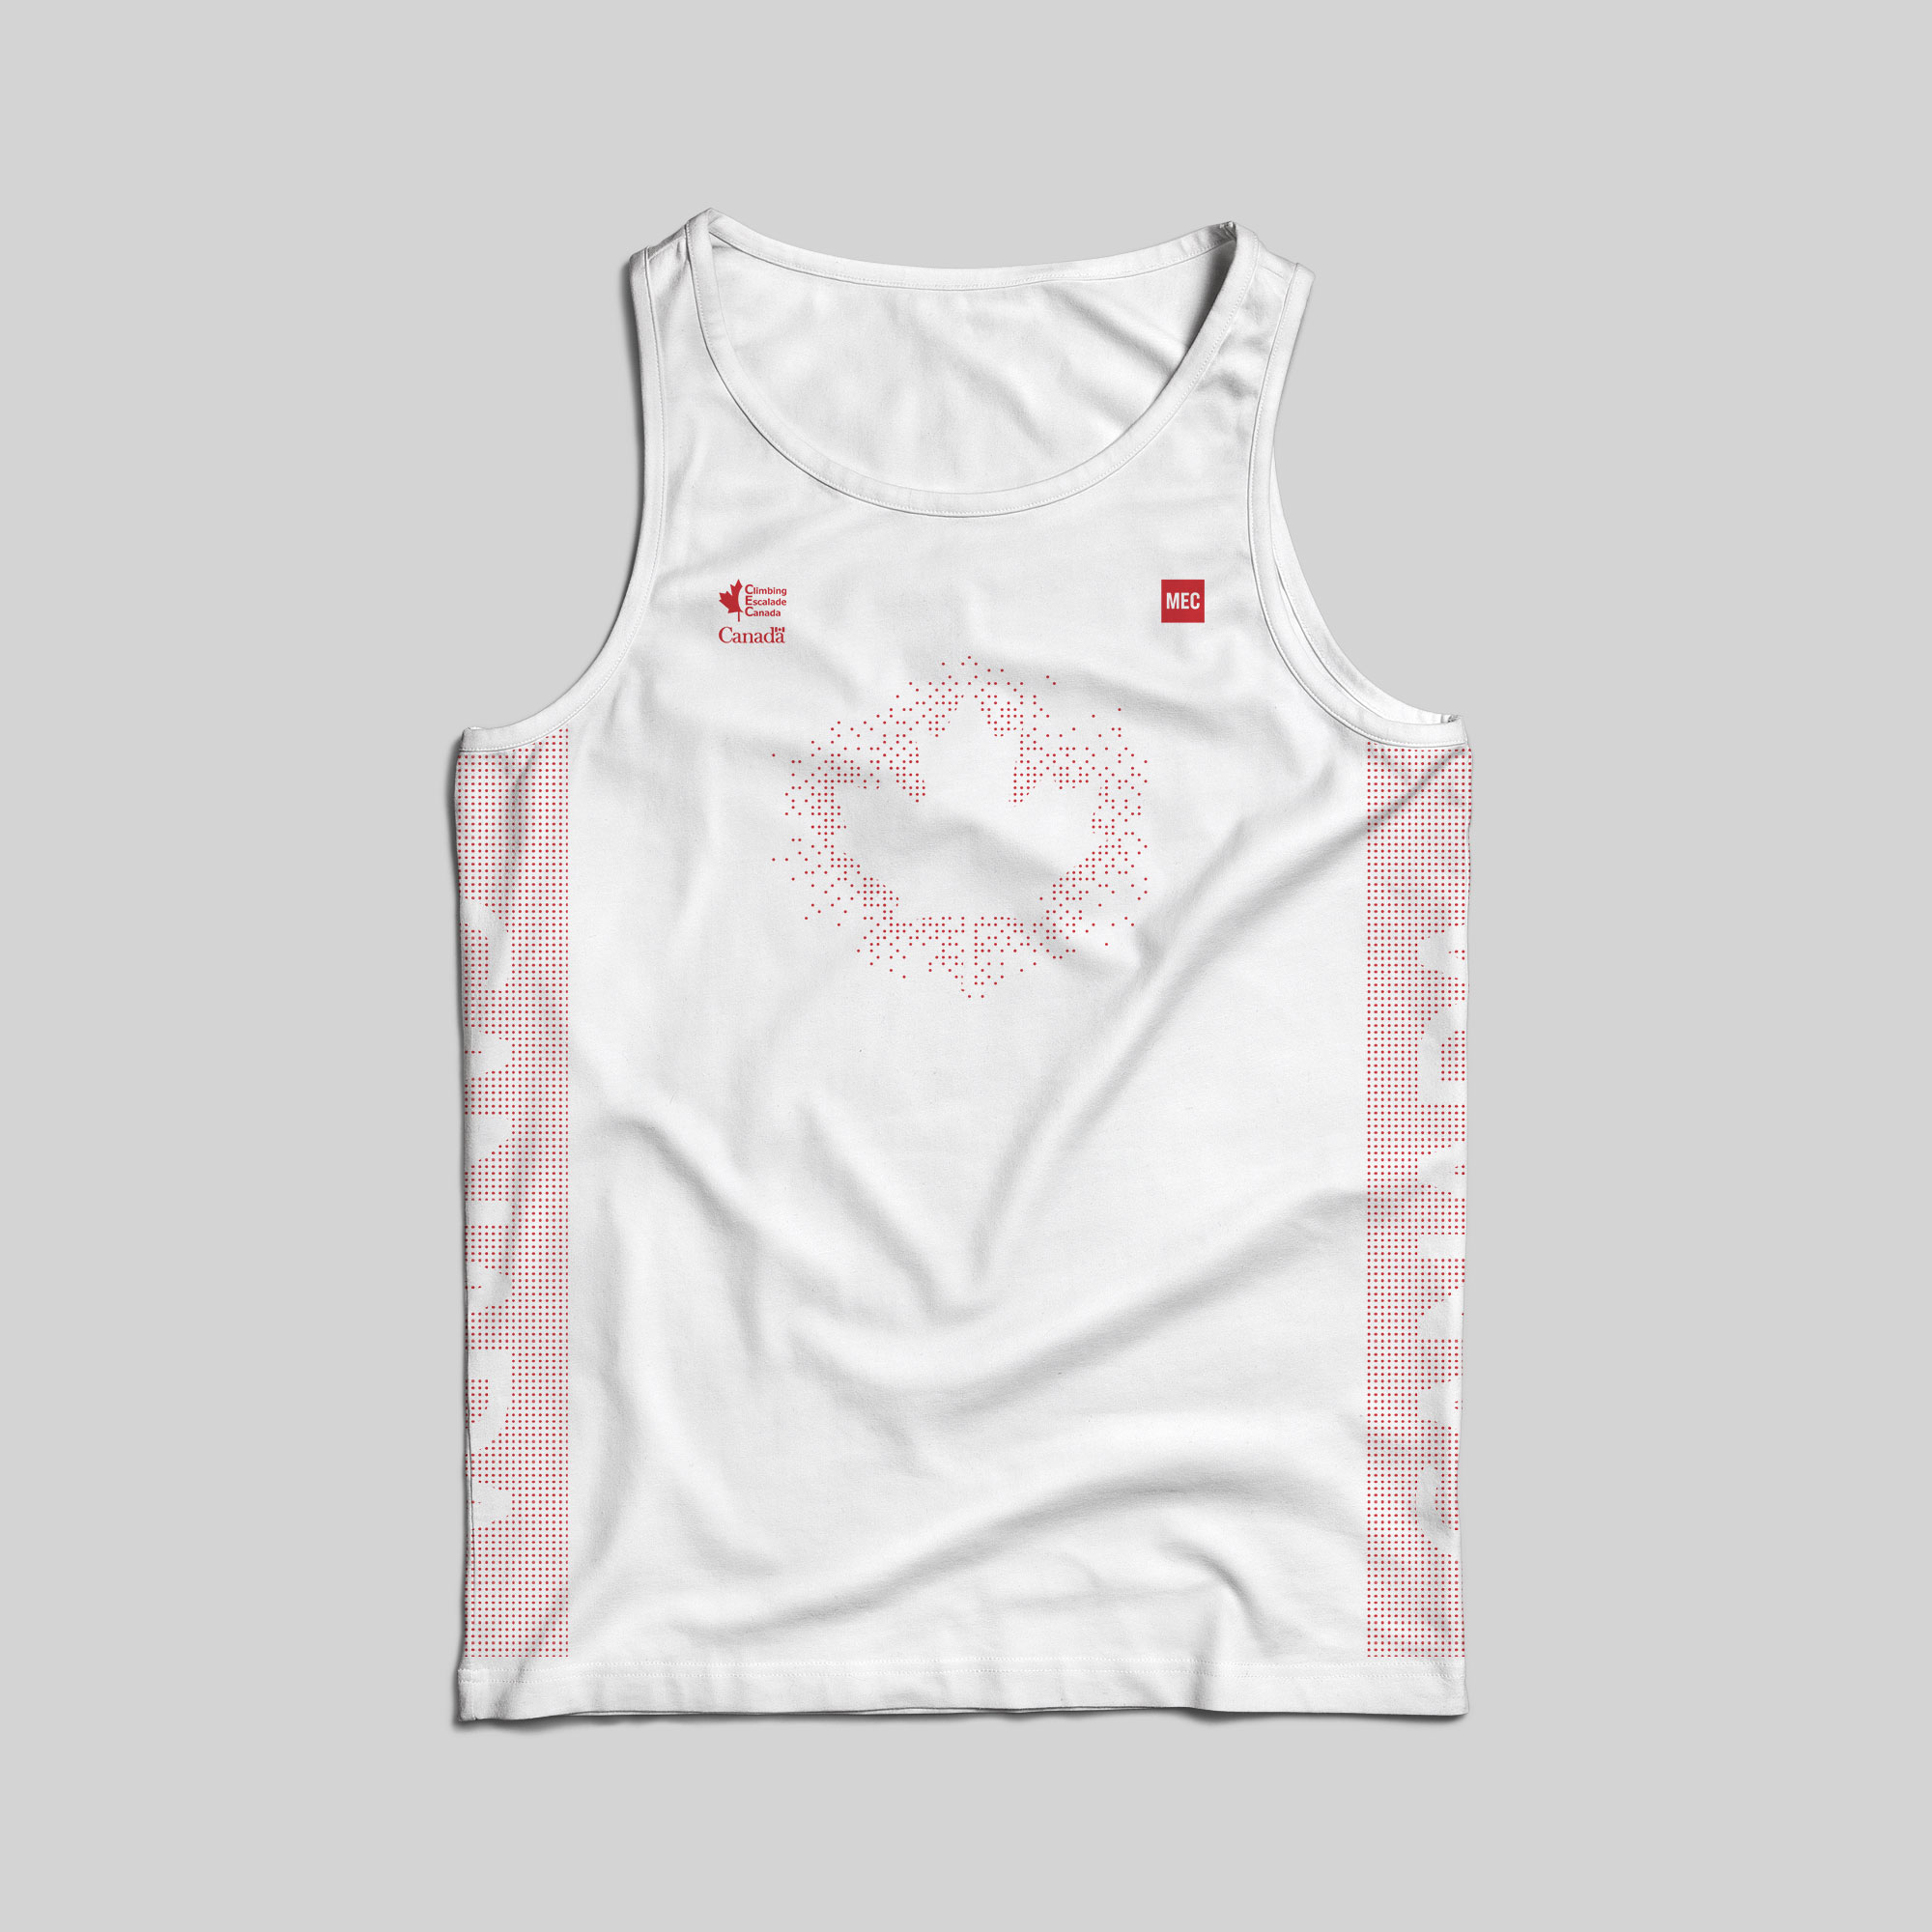 canada-jersey-flat-lay-front